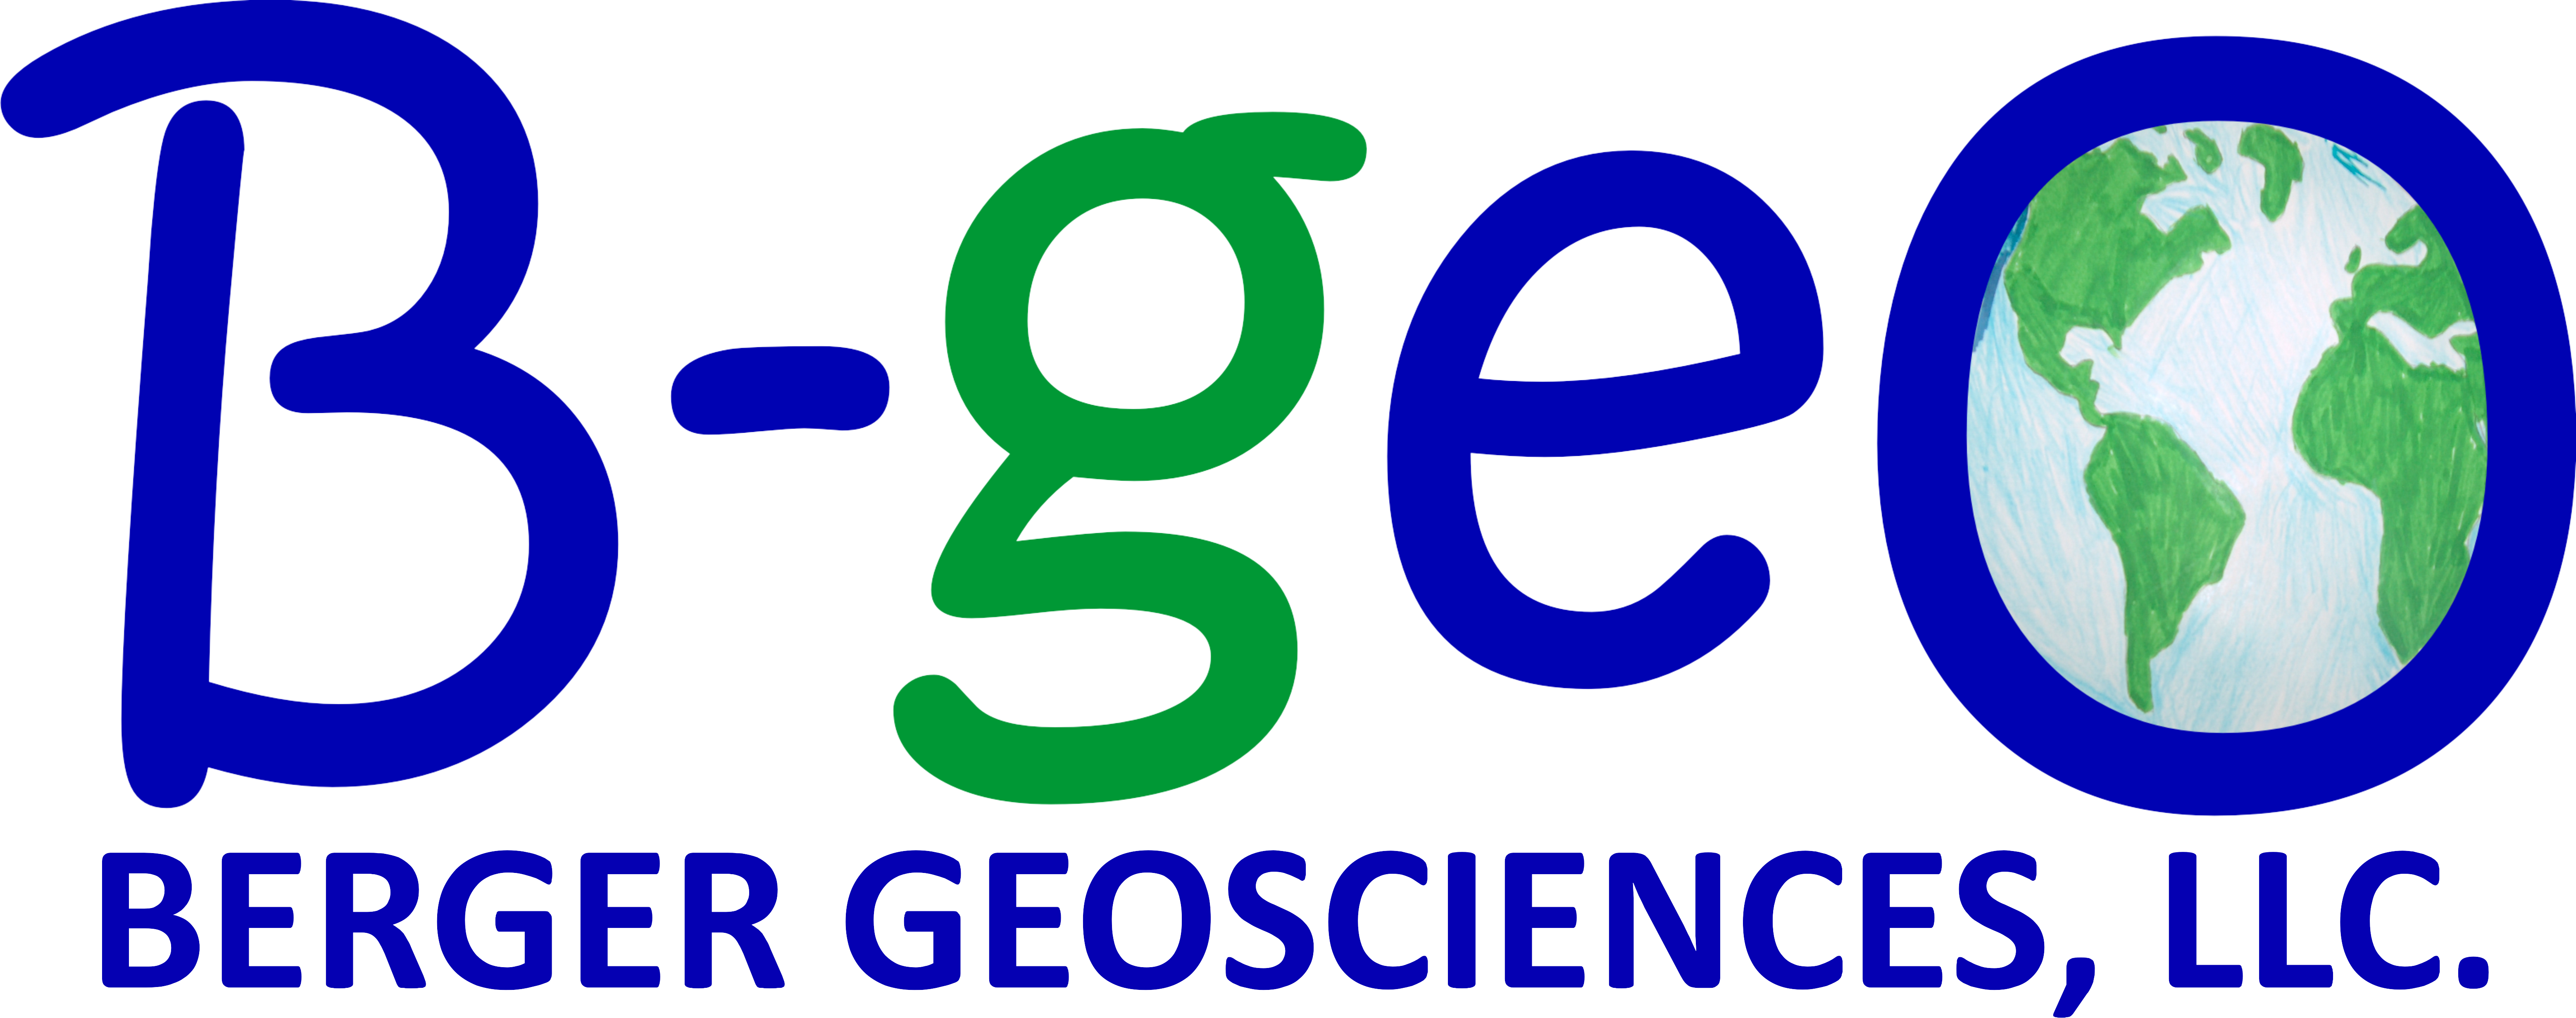 Berger Geosciences, LLC. (B-geO)